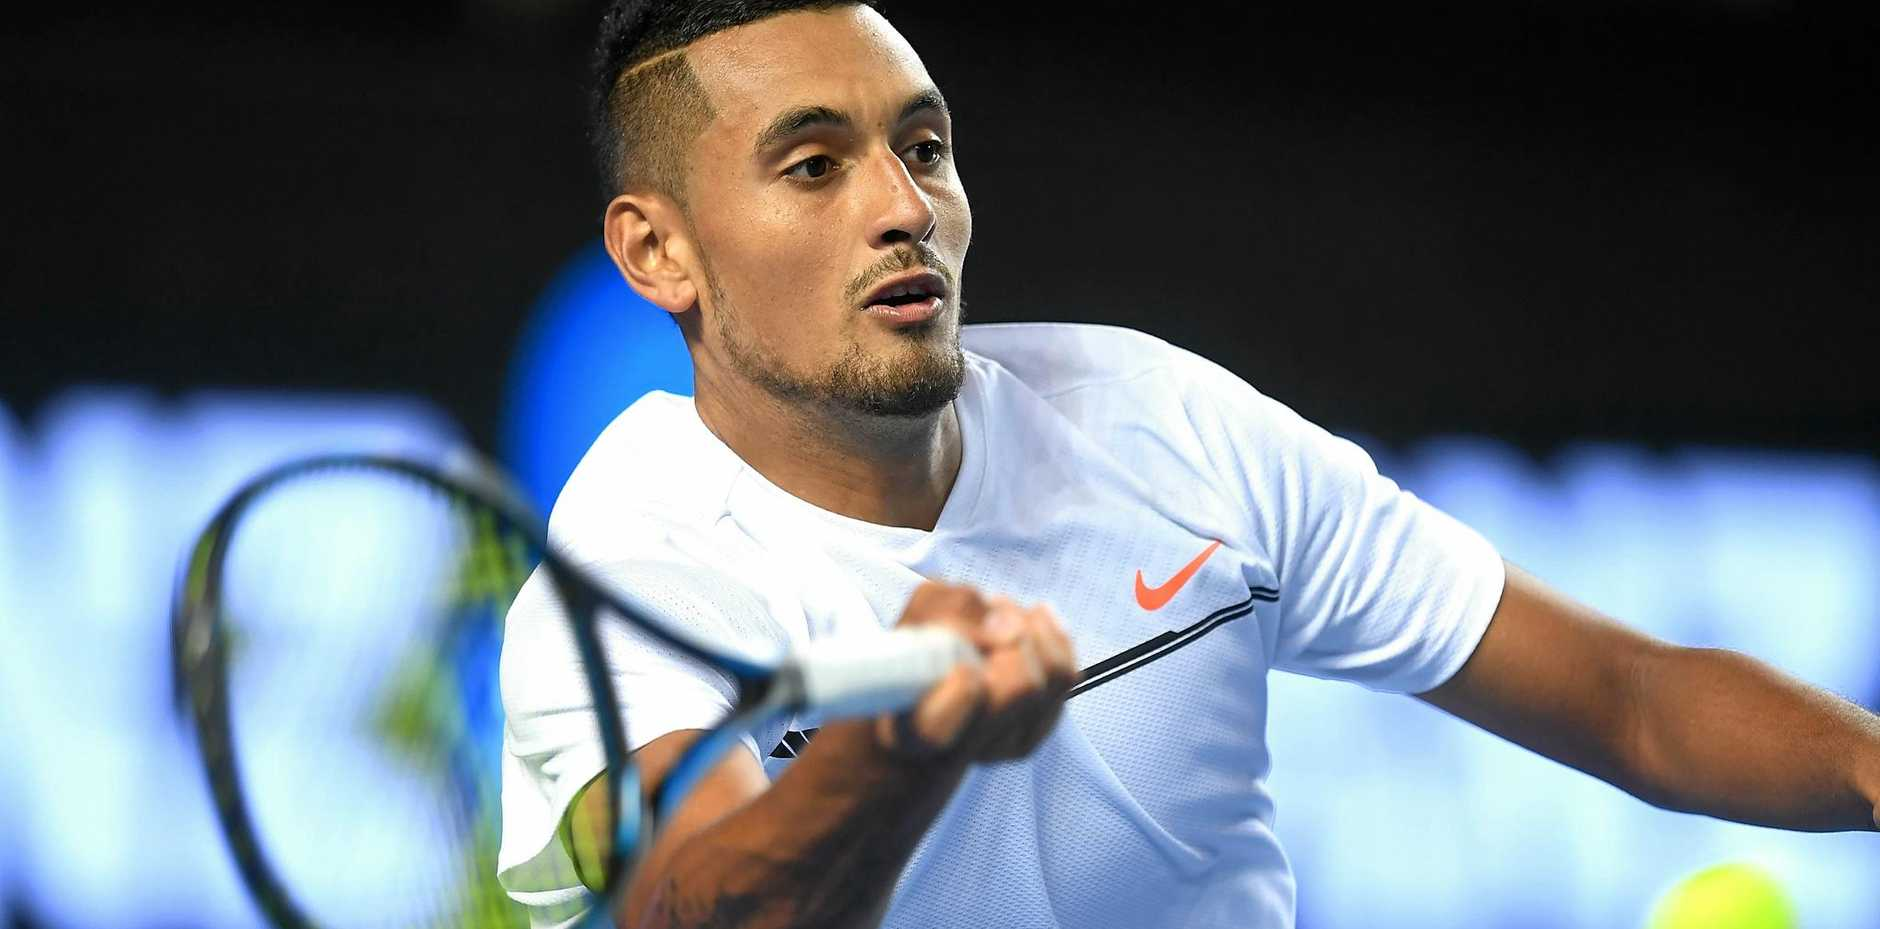 Nick Kyrgios of Australia during play against Andreas Seppi of Italy at the Australian Open.